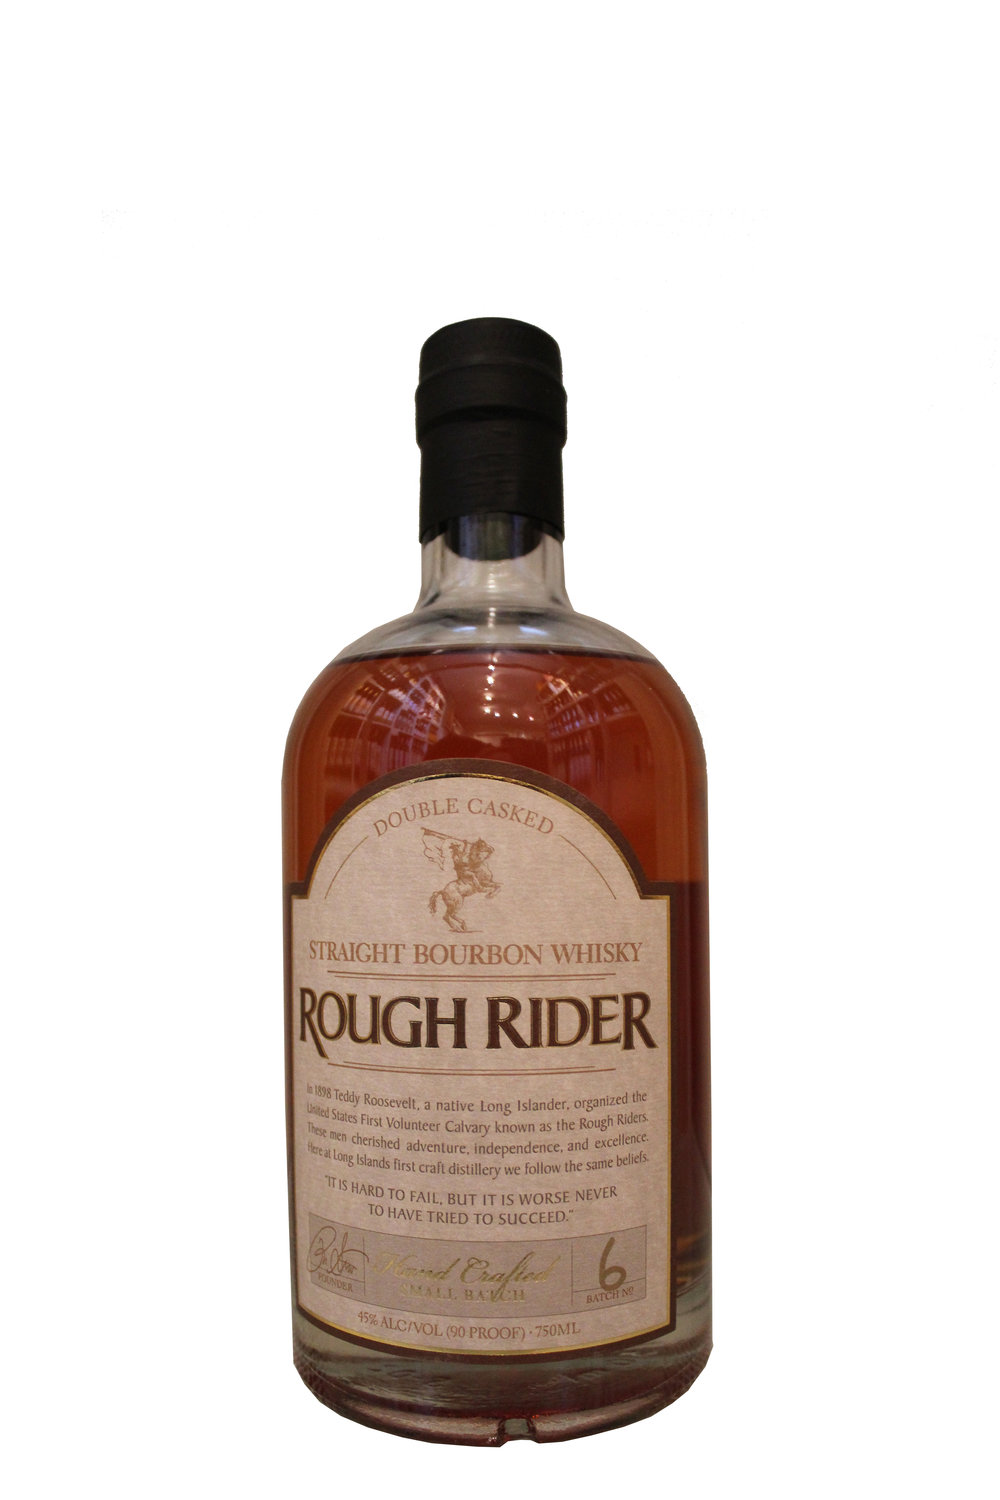 Double Casked Bourbon Whiskey  Rough Rider,  New York